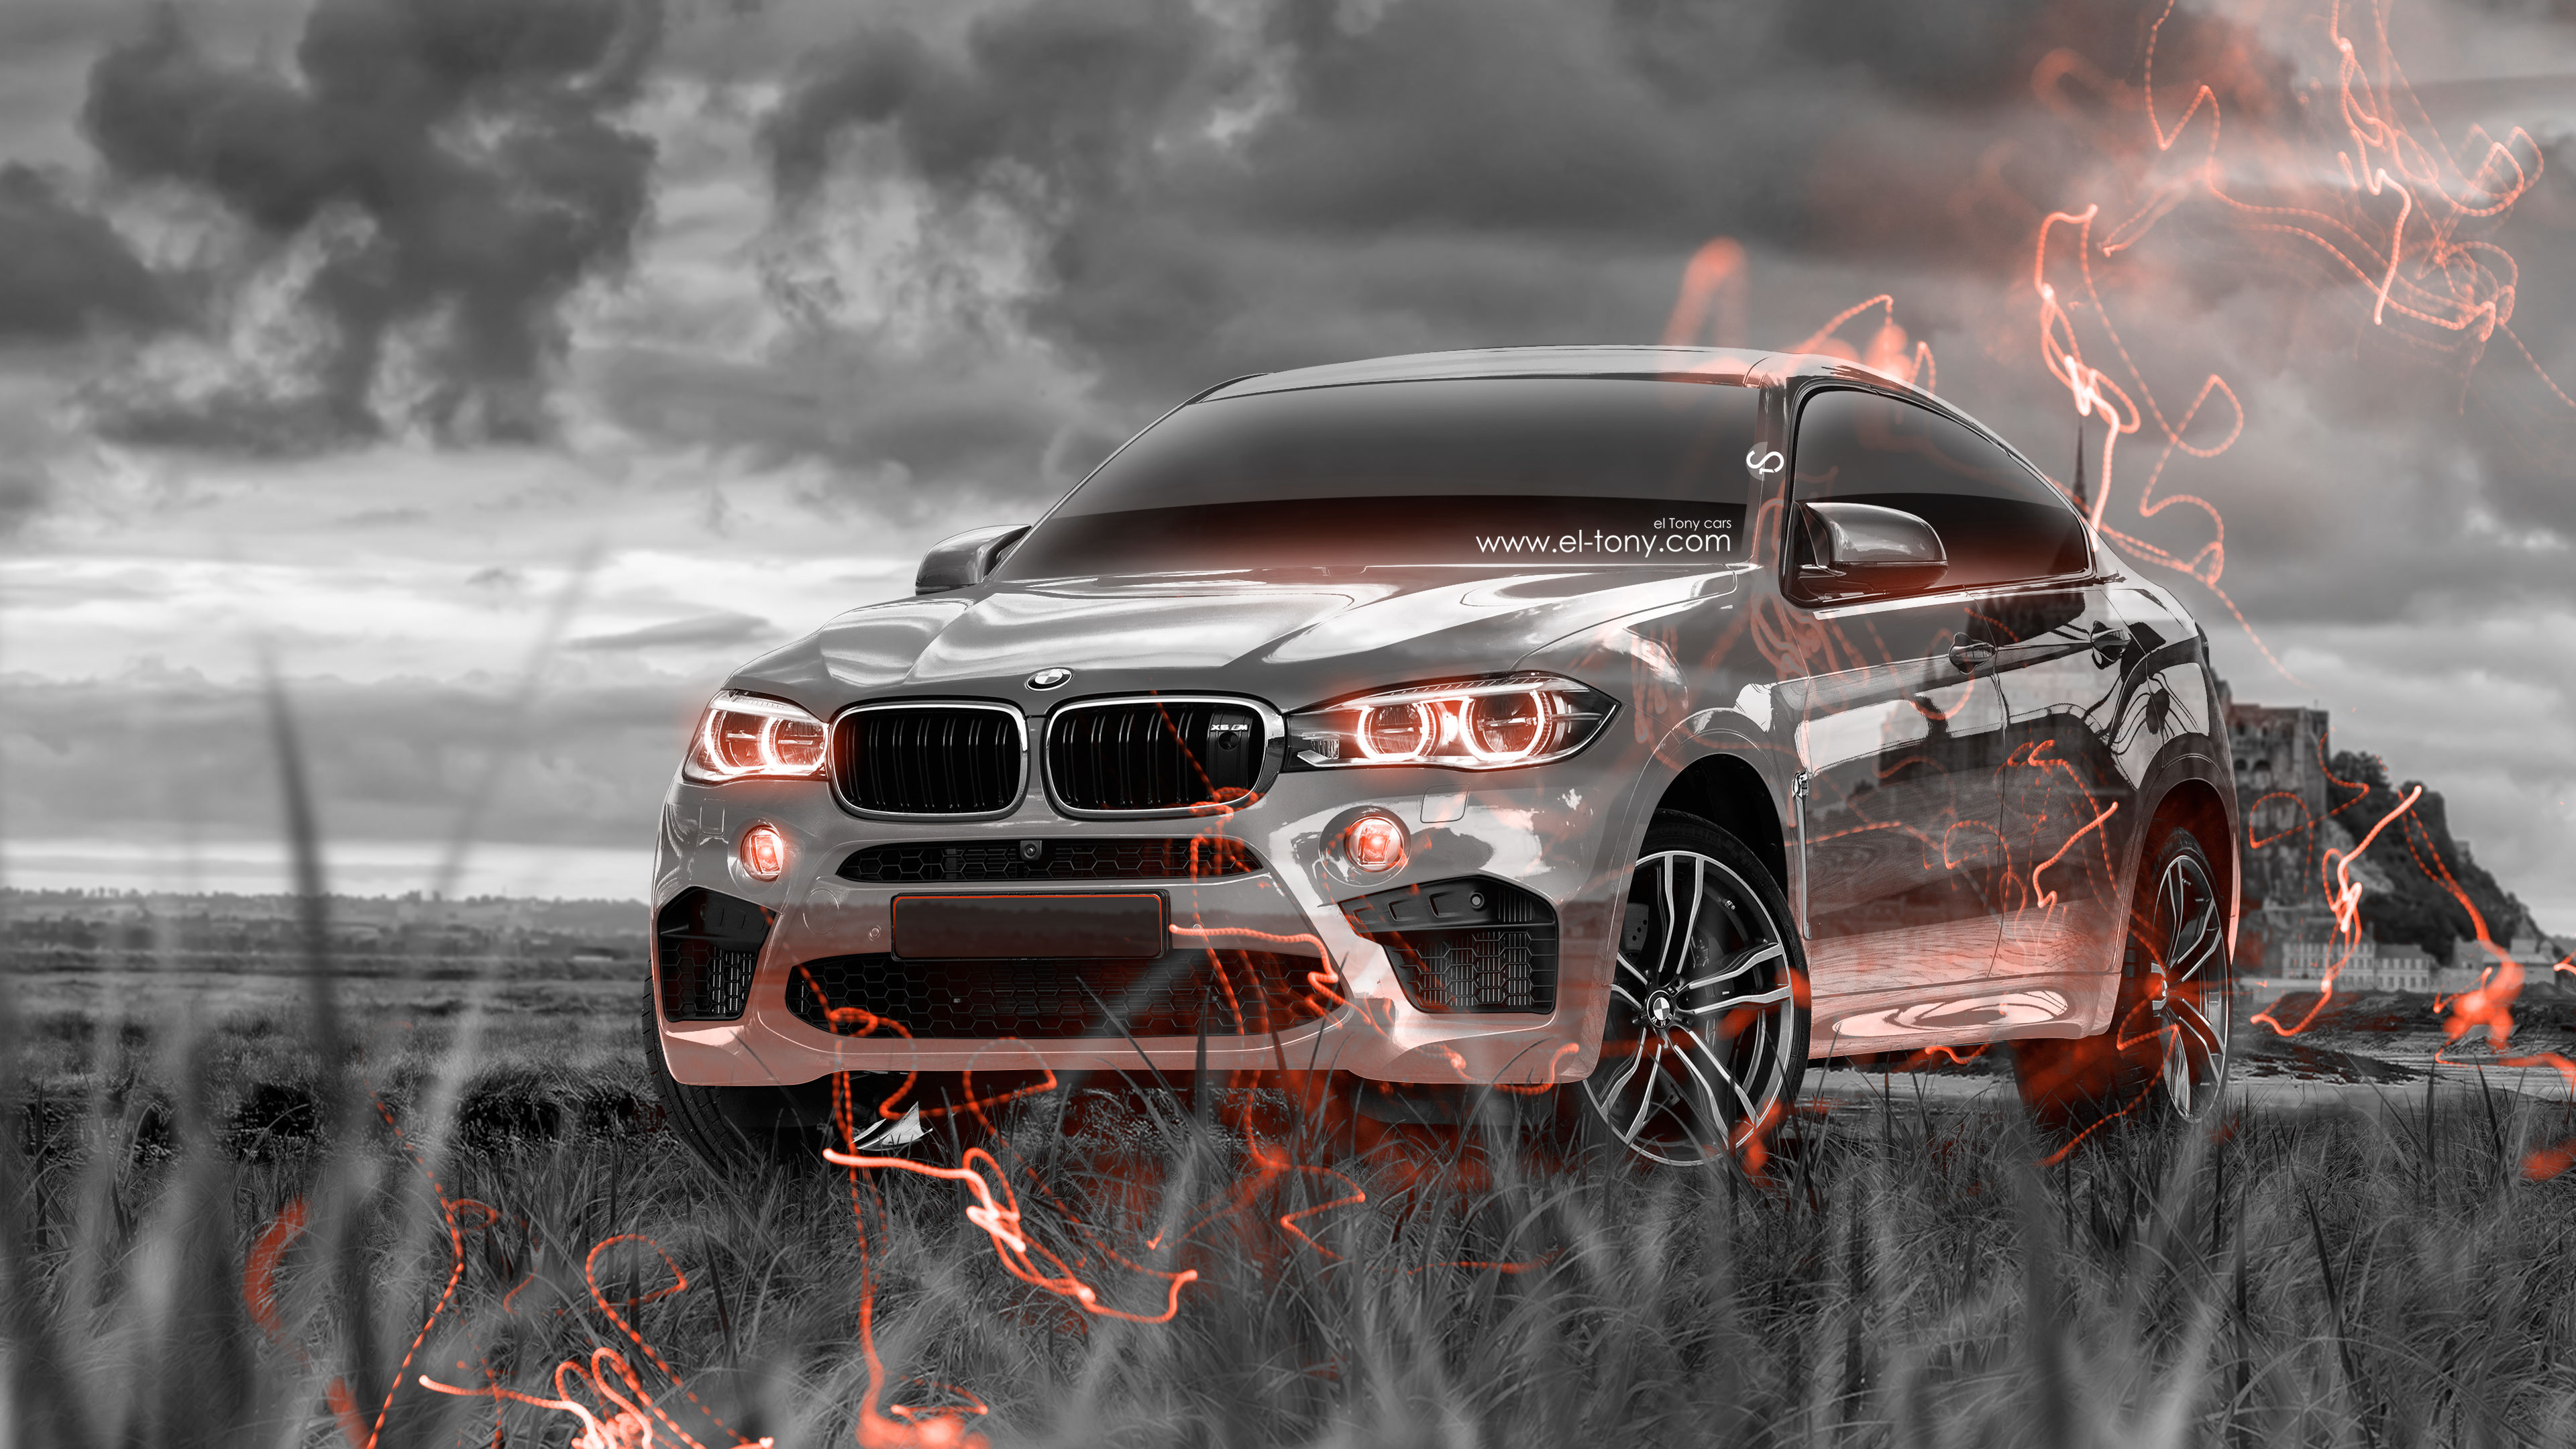 3840x2160 - BMW X6 Wallpapers 16